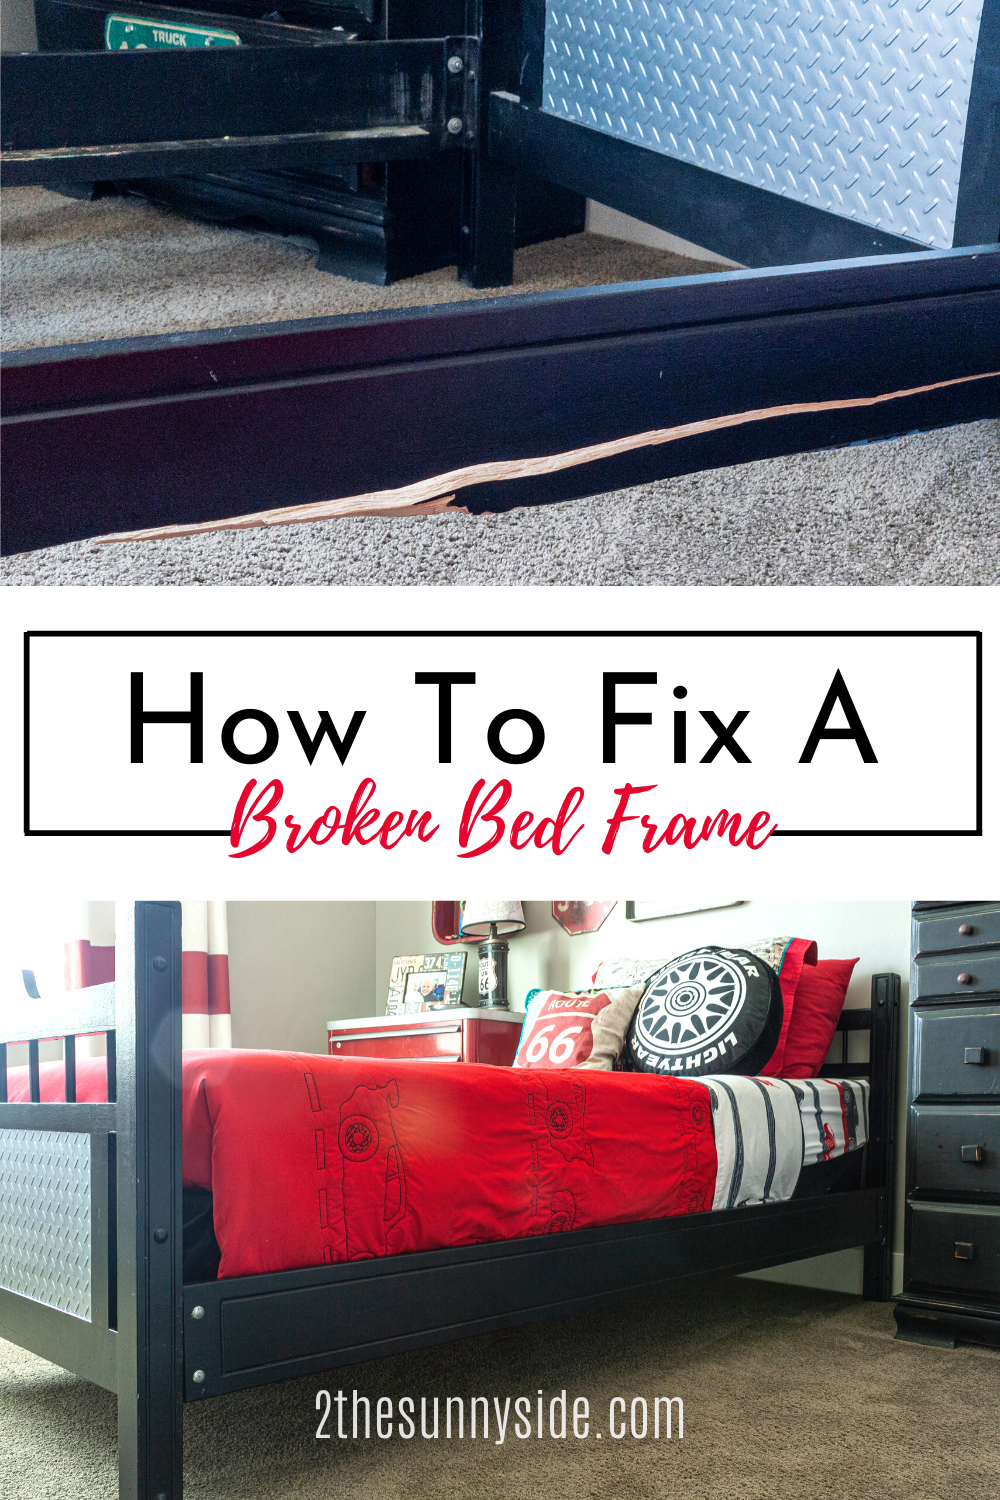 How To Fix A Broken Bed Frame In 2020 Diy Home Decor Projects